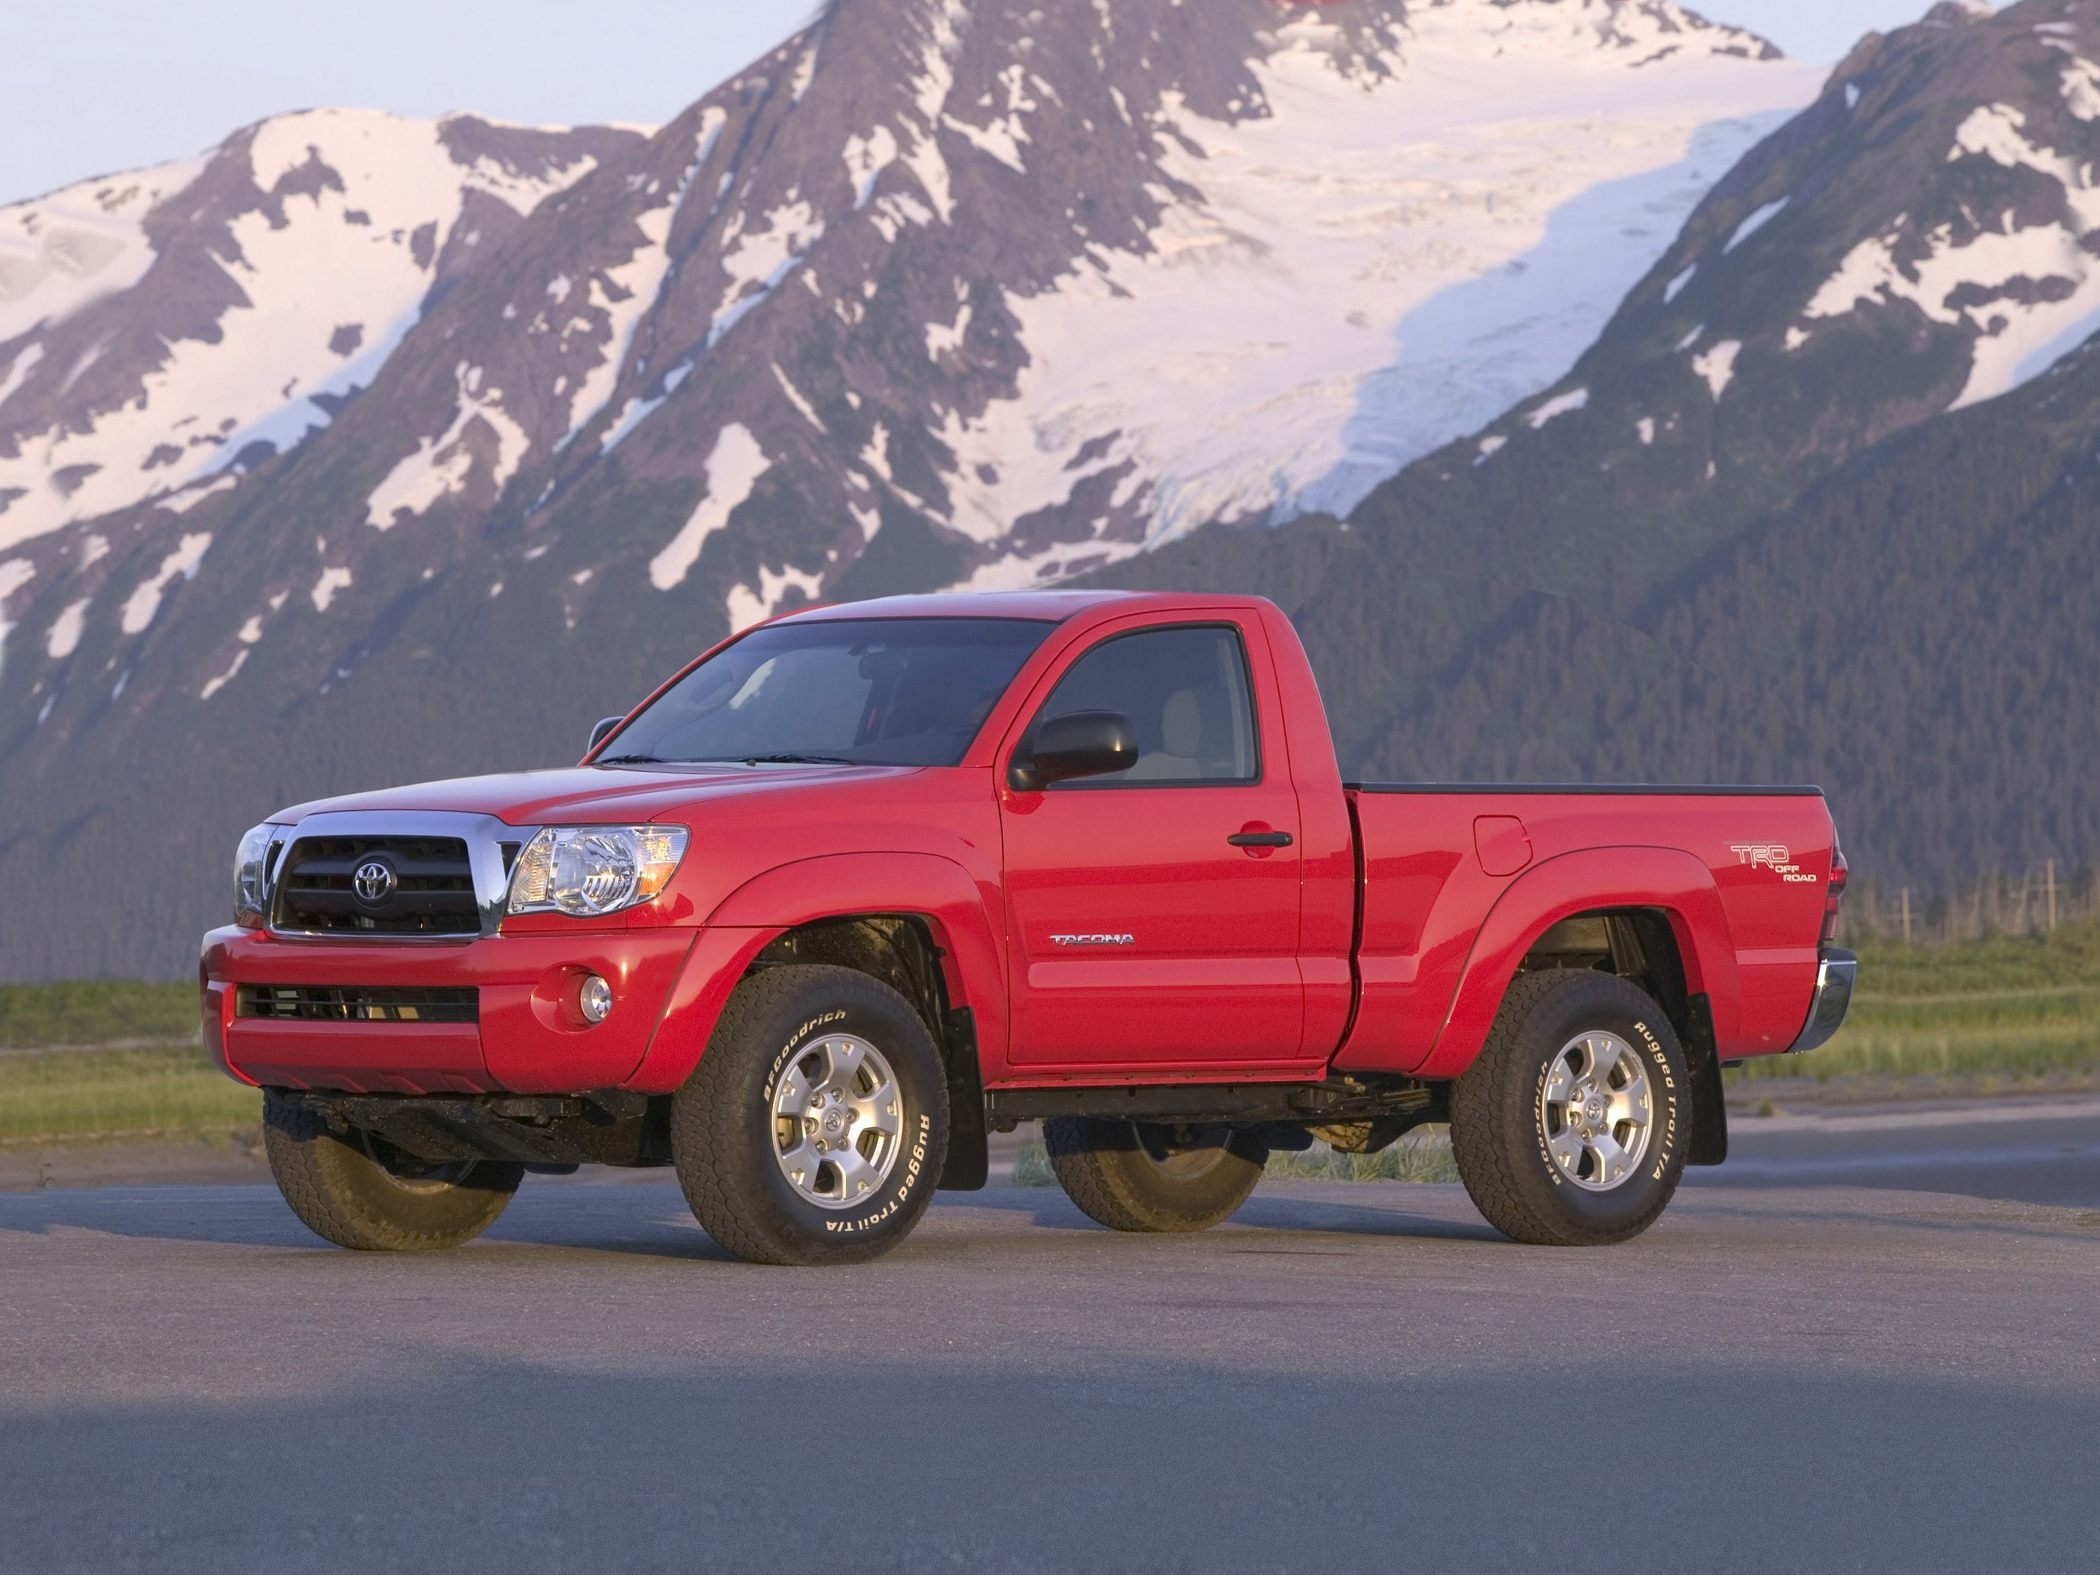 tacoma invoice price toyota tacoma 2010 price autos news information 2100 X 1575